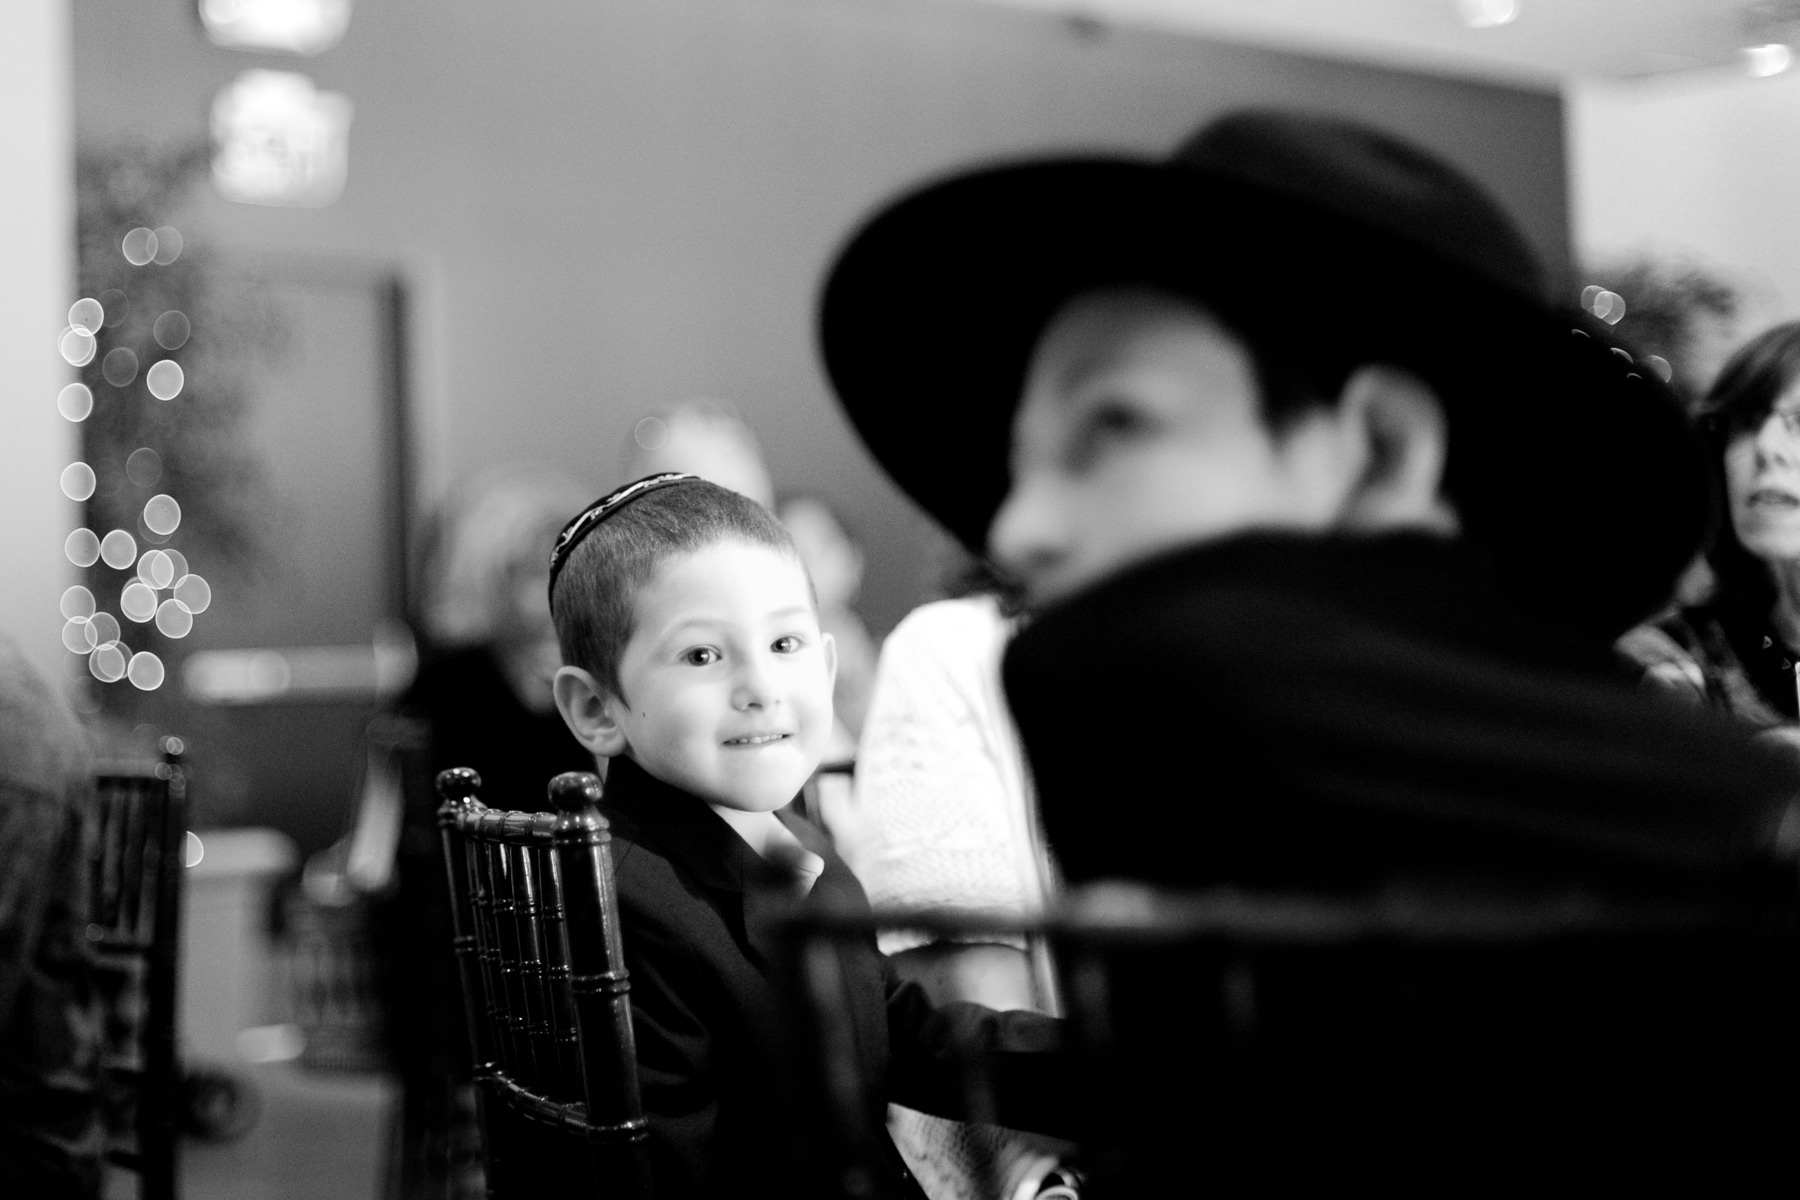 North Bay Mitzvah and Jewish Event Photography Images taken at Marin Art & Garden